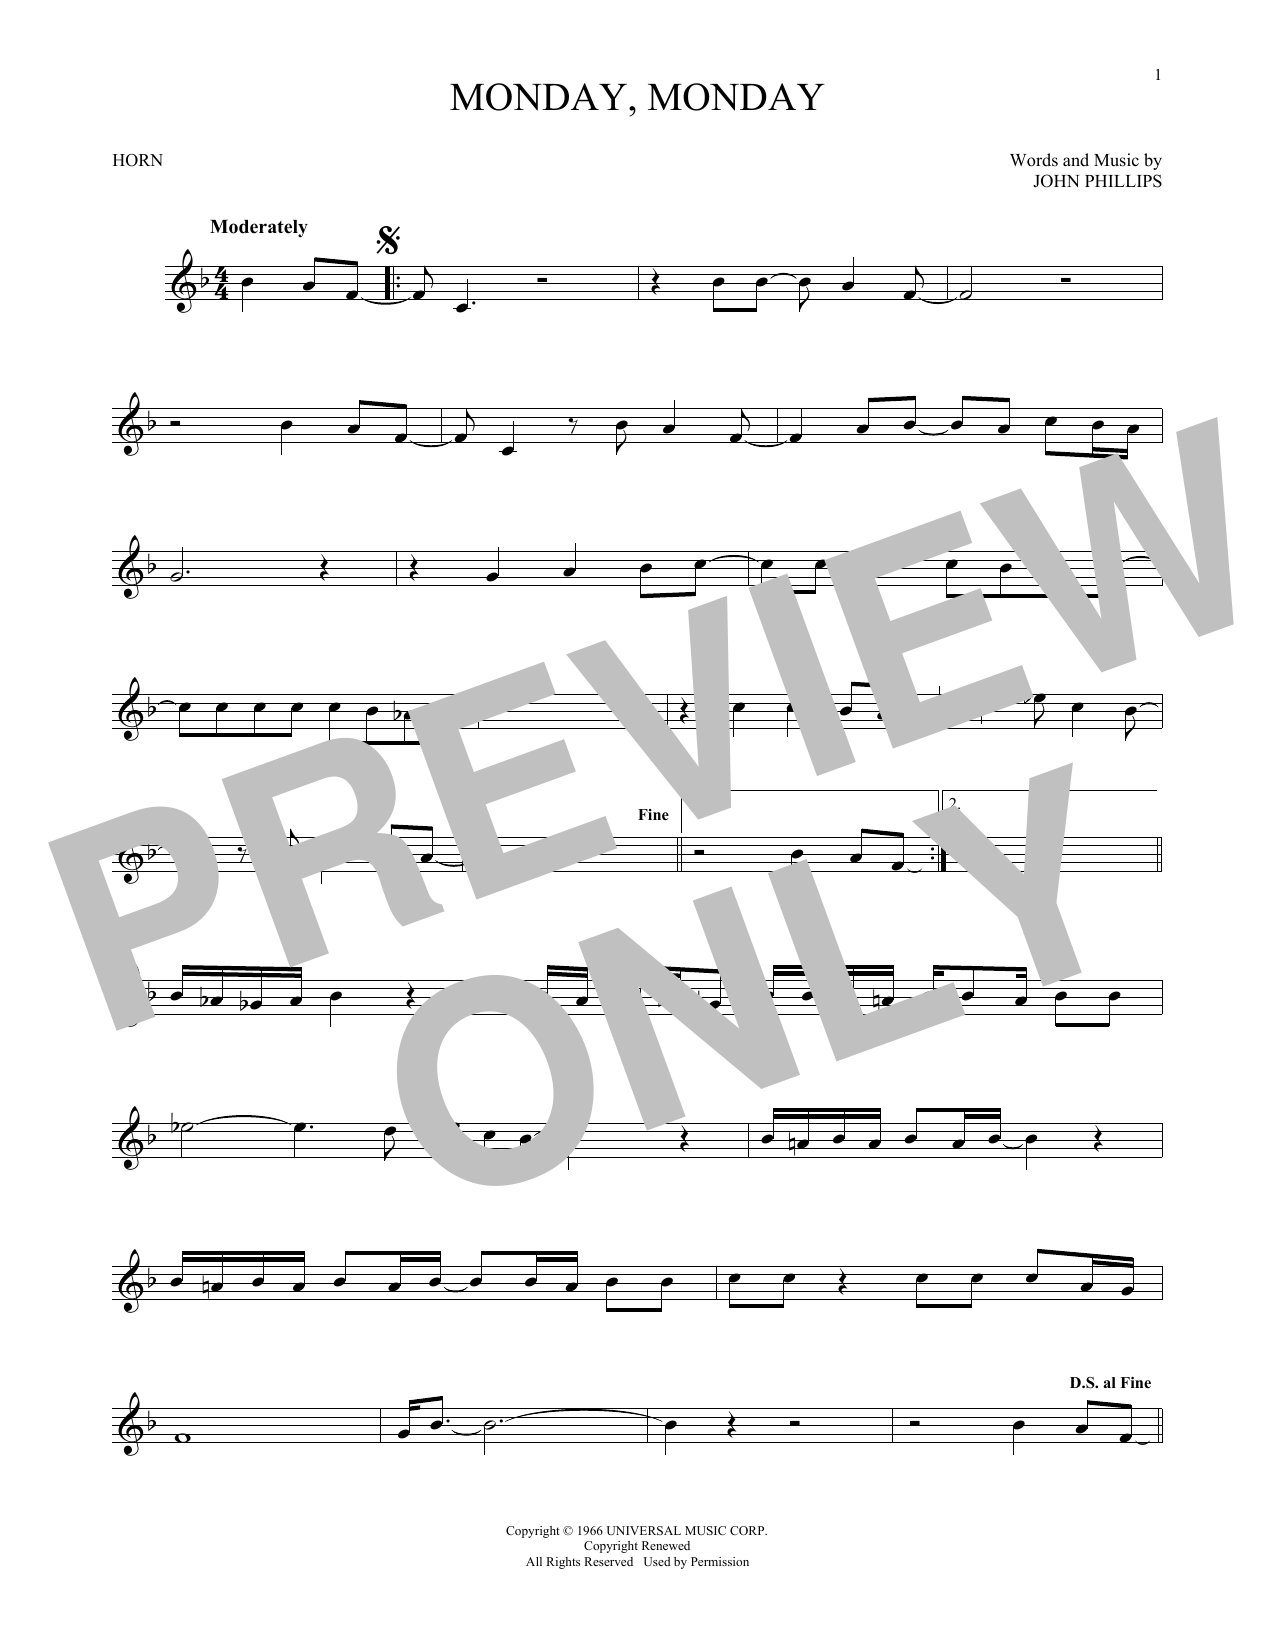 Monday, Monday (French Horn Solo)